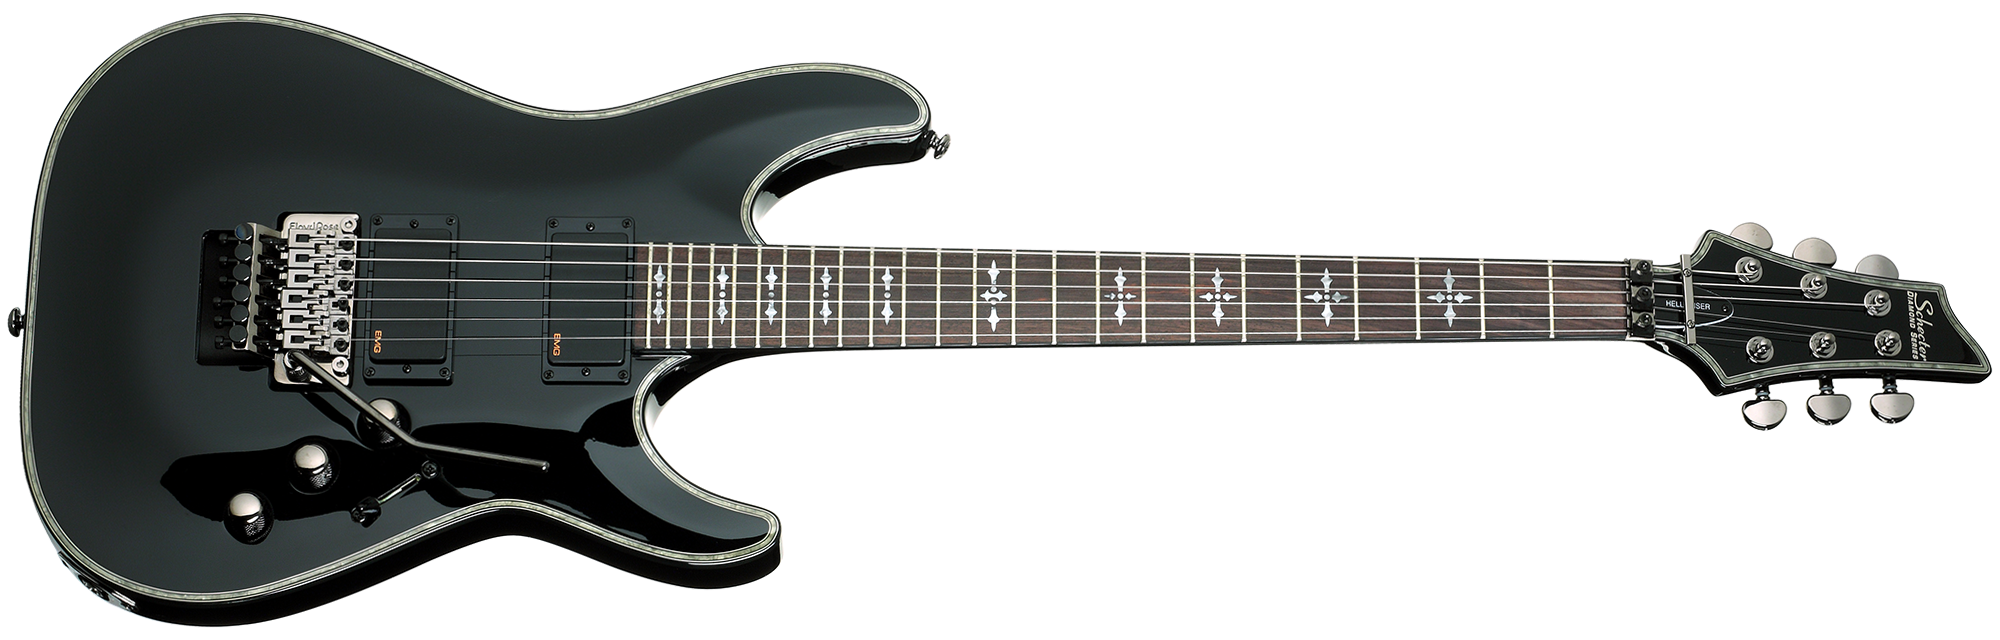 Hellraiser C-1 FR Gloss Black (BLK) SKU #1793